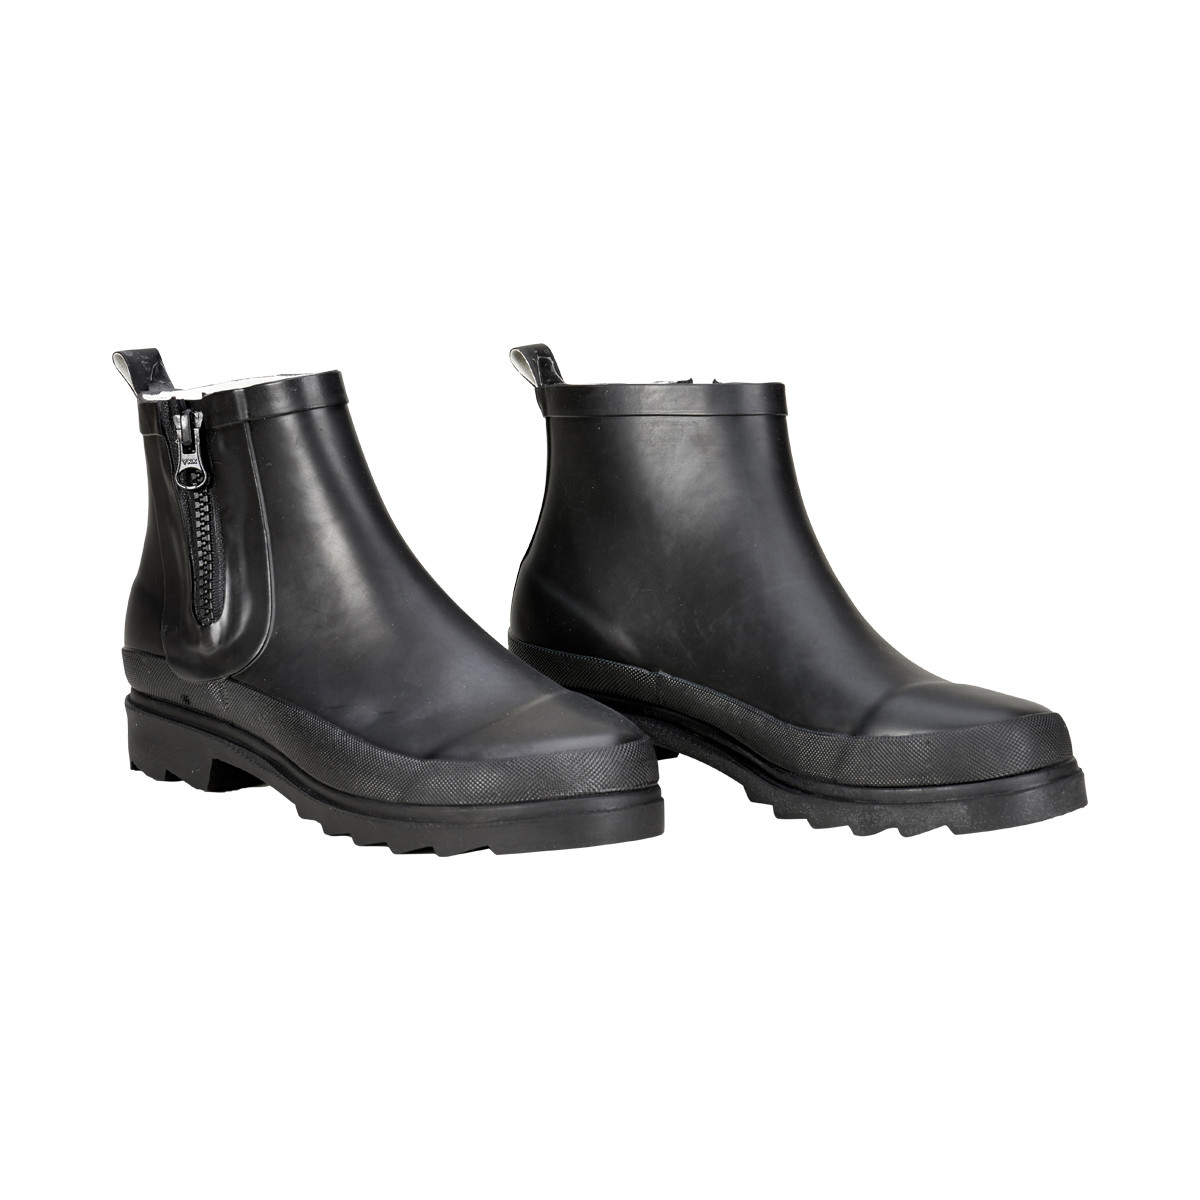 abad64a7 Sanita Fiona Ankle Wellies 467981 2